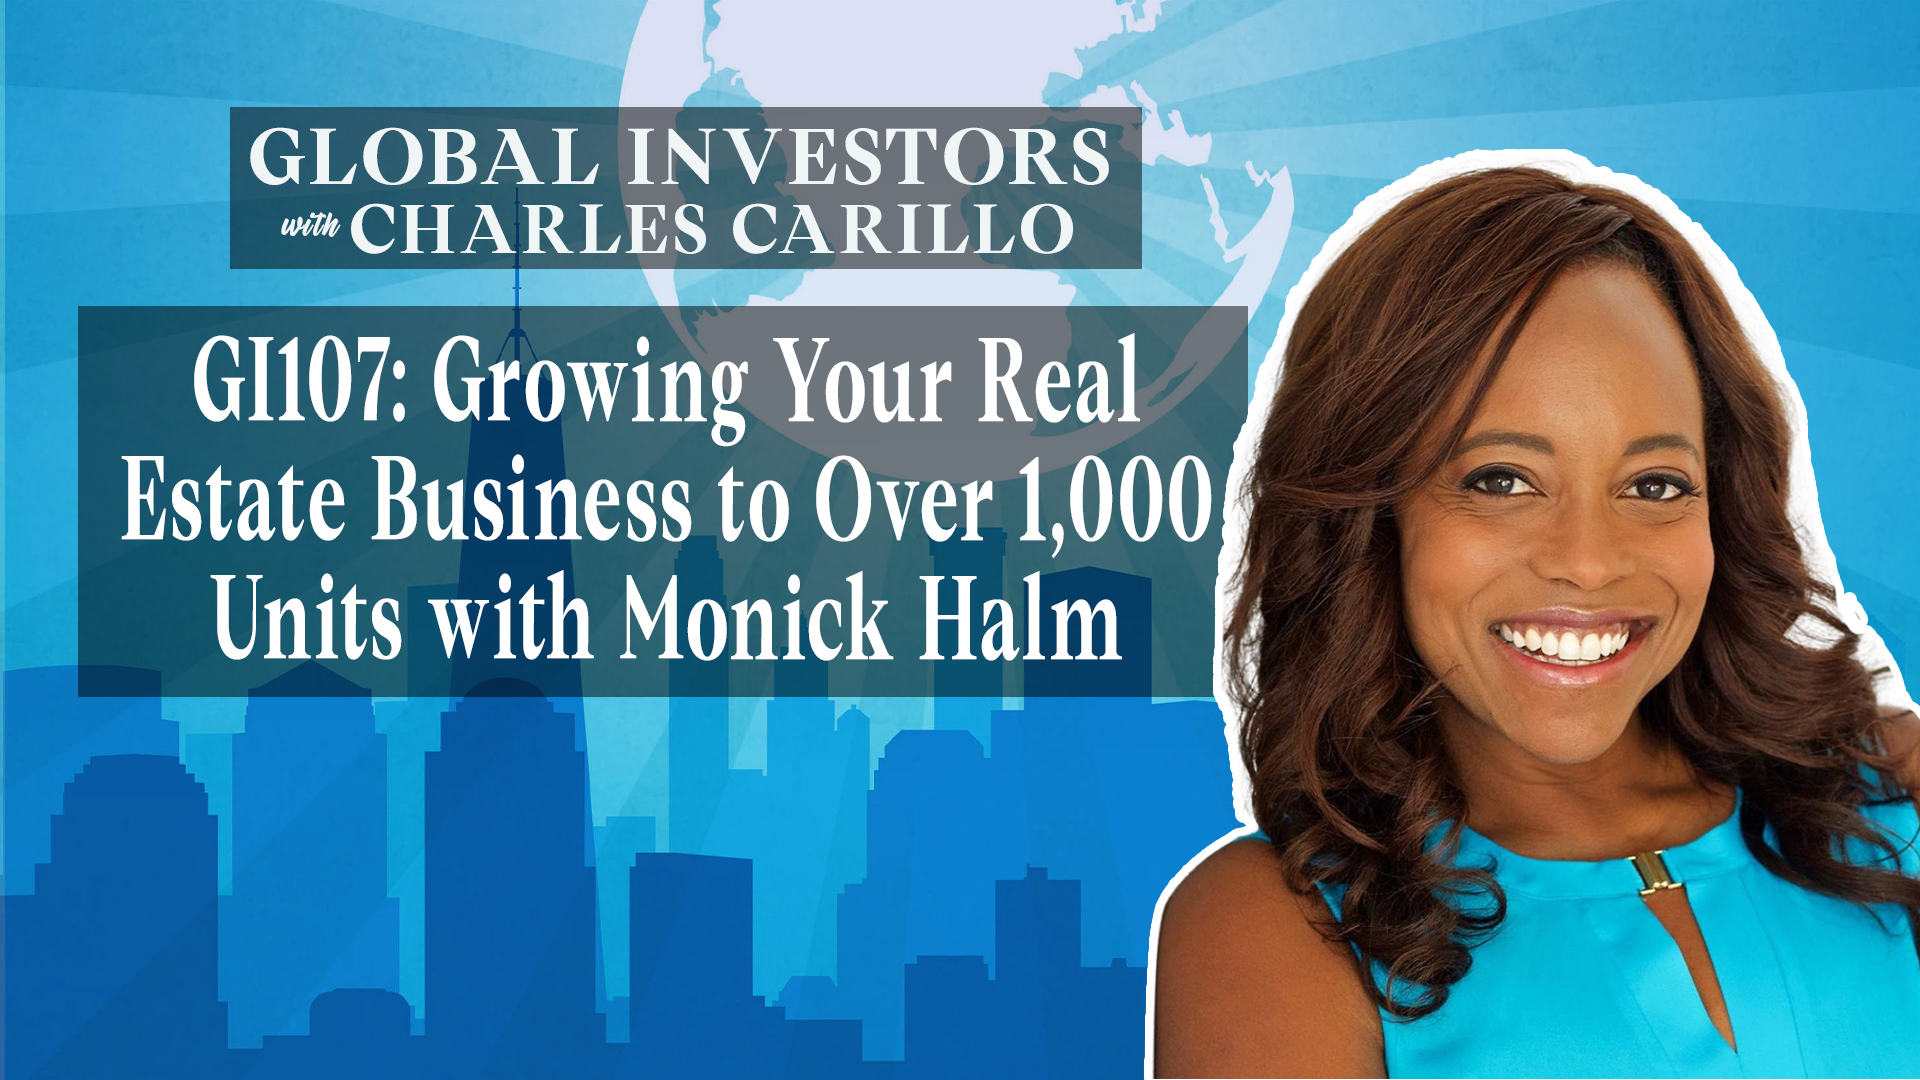 GI107: Growing Your Real Estate Business to Over 1,000 Units with Monick Halm